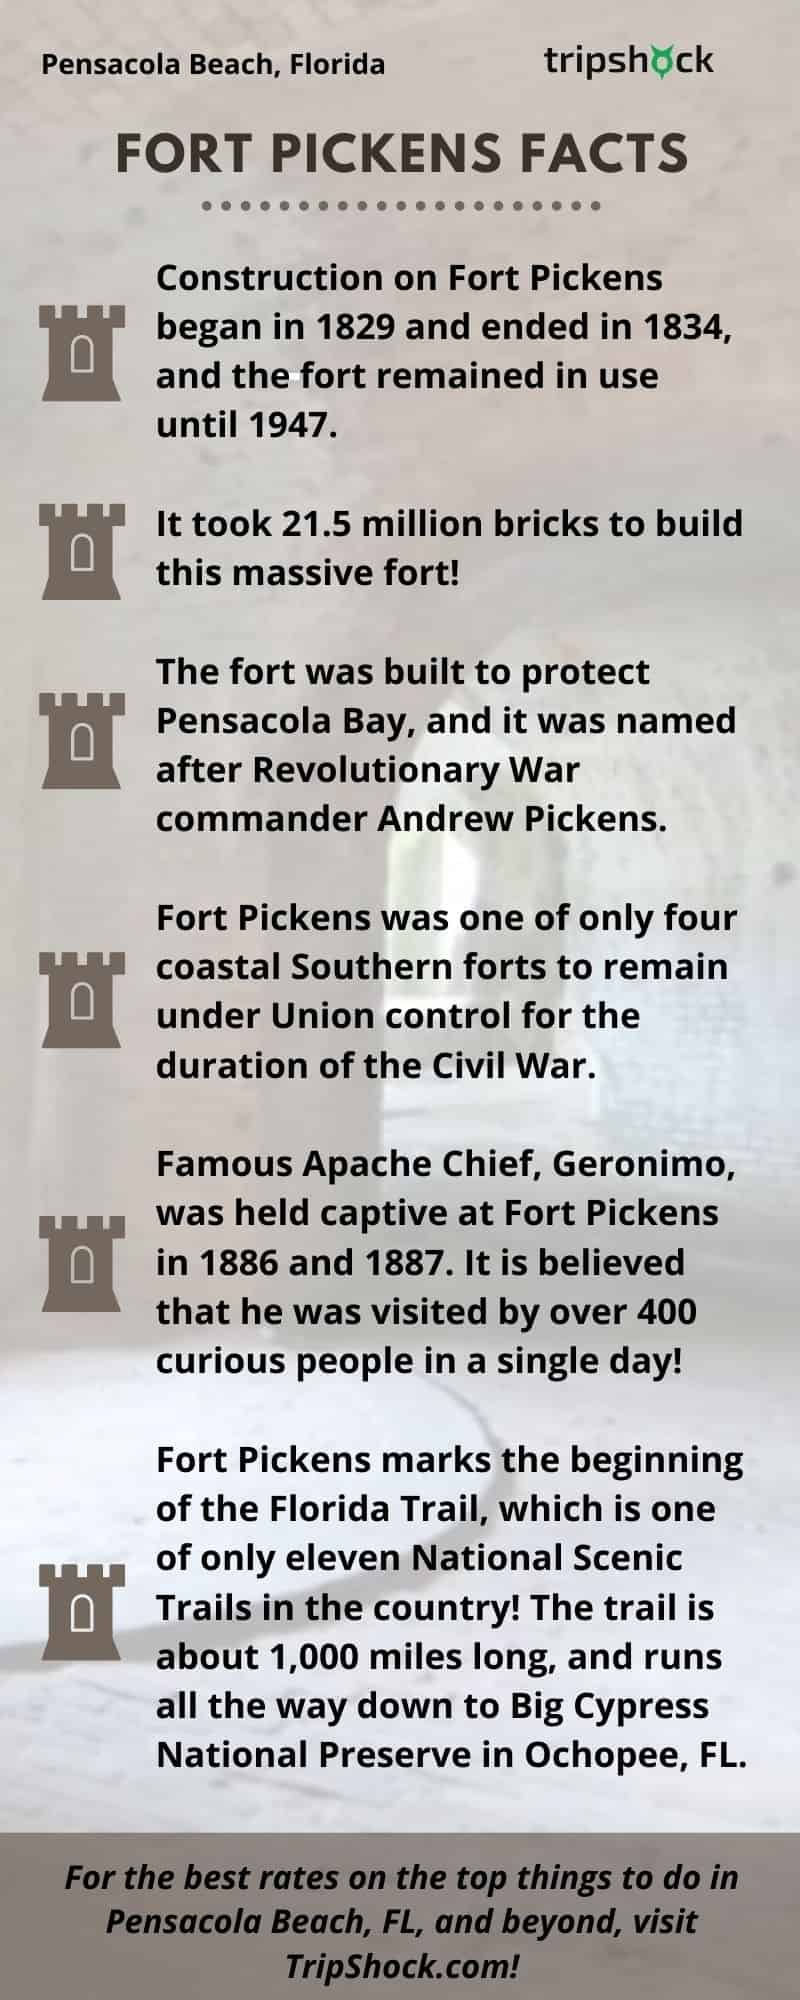 Facts about Fort Pickens in Pensacola Beach, FL